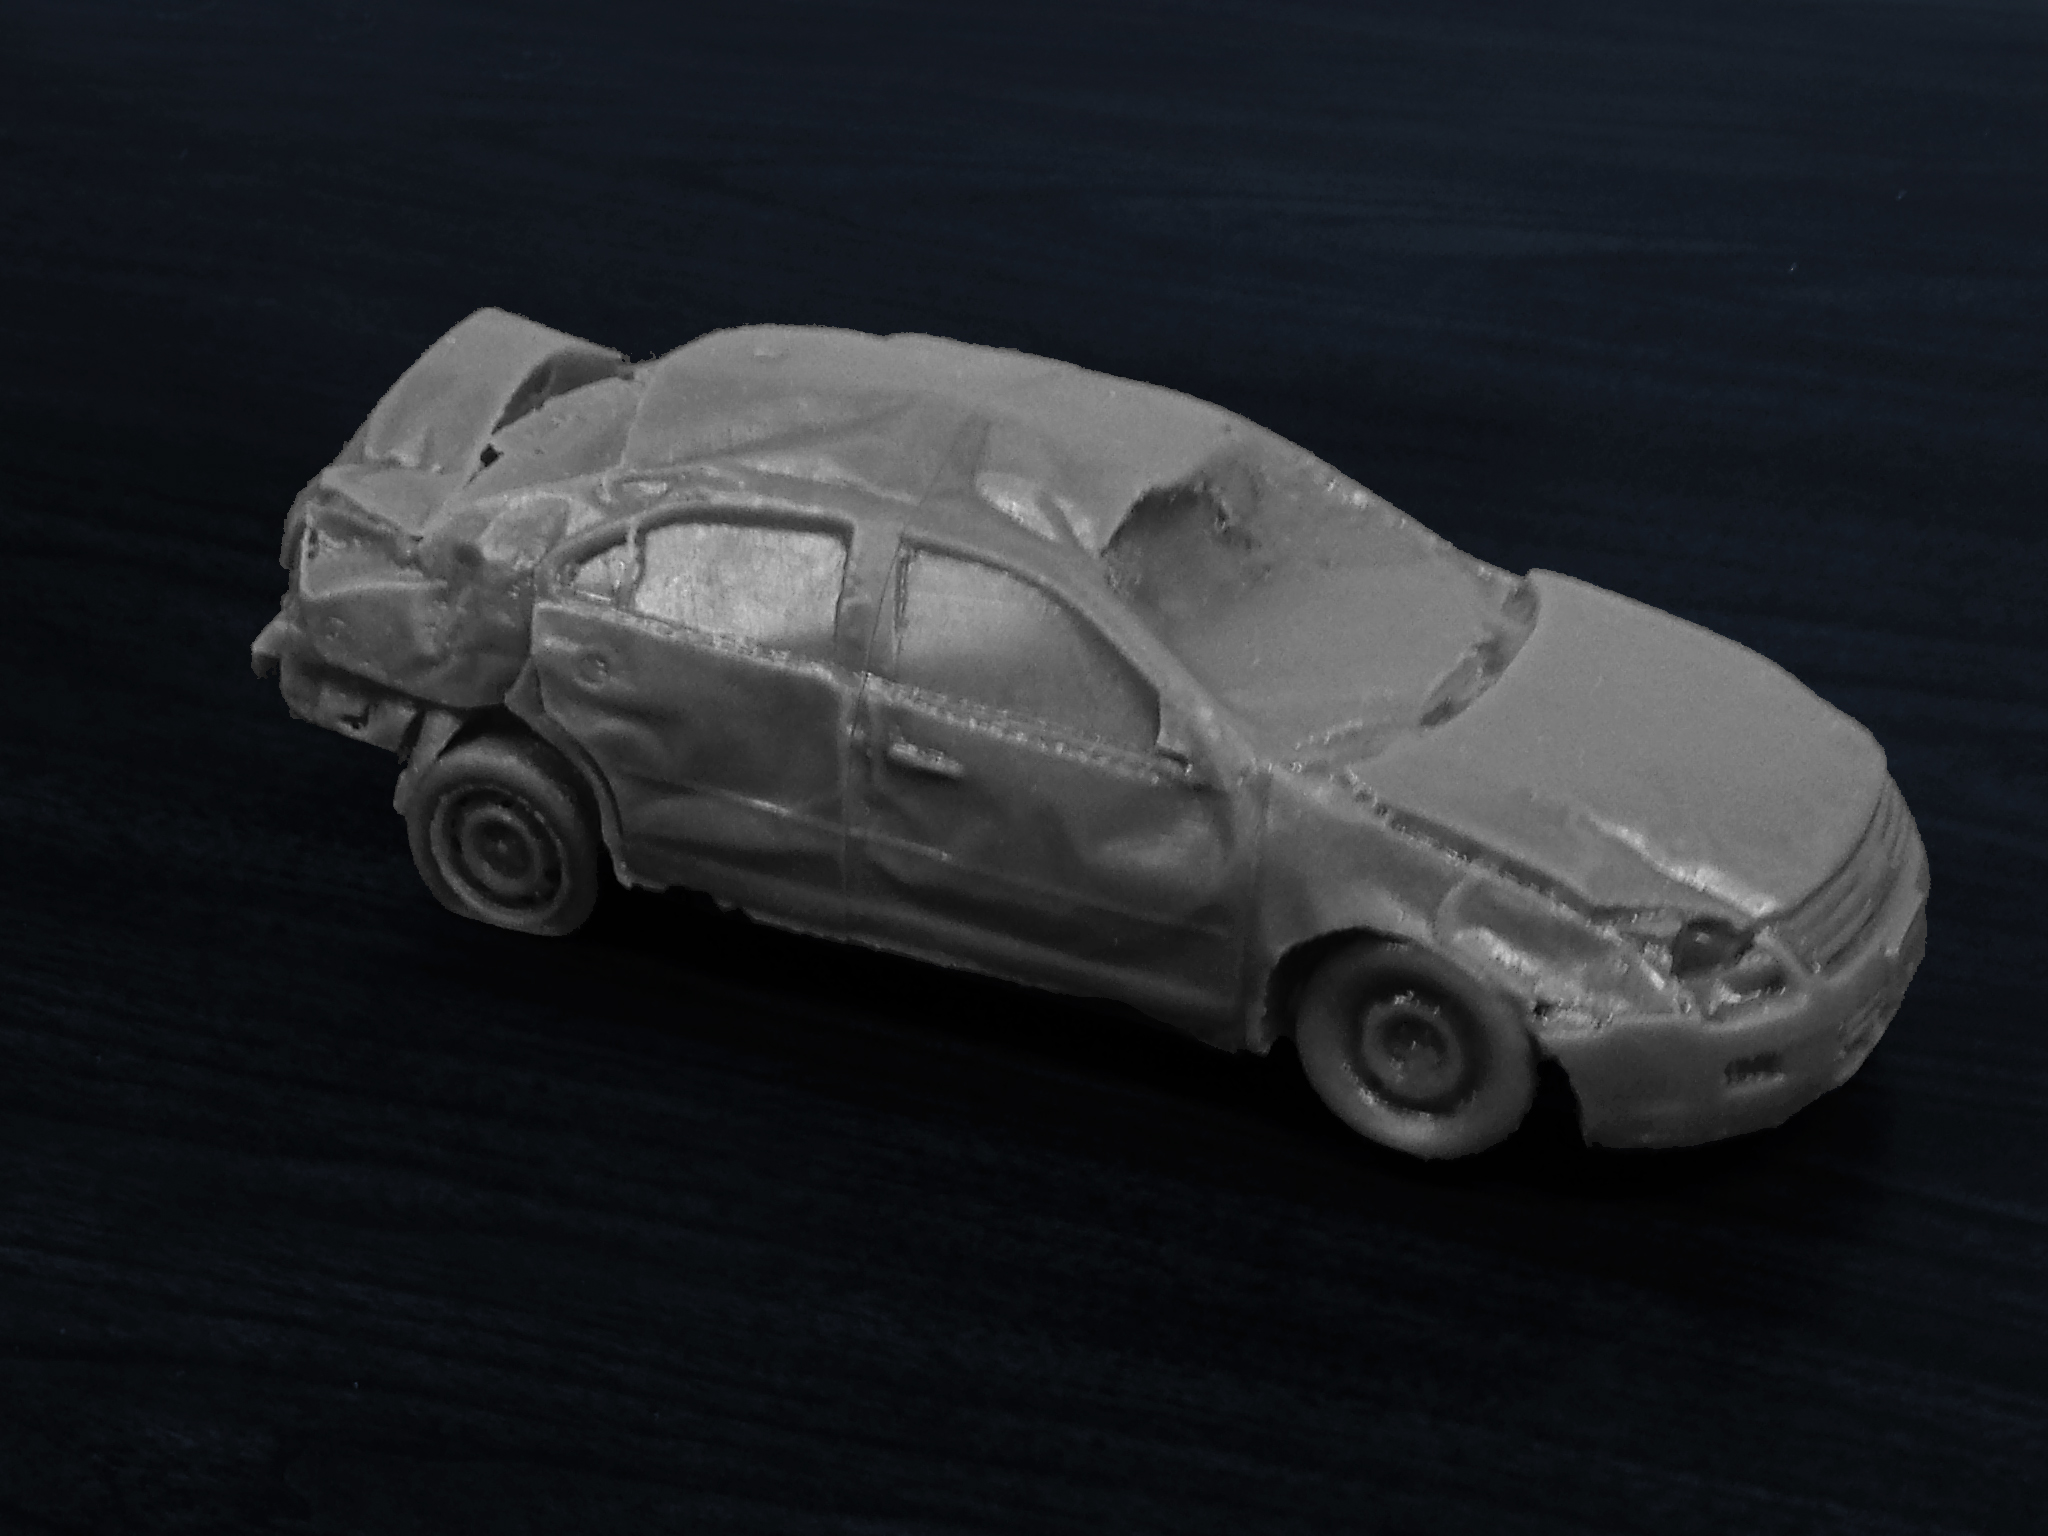 Subject Vehicle 3D Print Subject Vehicle Ford Fusion: This 3d print was used in court to show that, had it not been for the inertial release of the rear passenger's seatbelt the occupant would not have been ejected from the vehicle and would have likely have survived because the occupant compartment itself was left relatively unscathed.